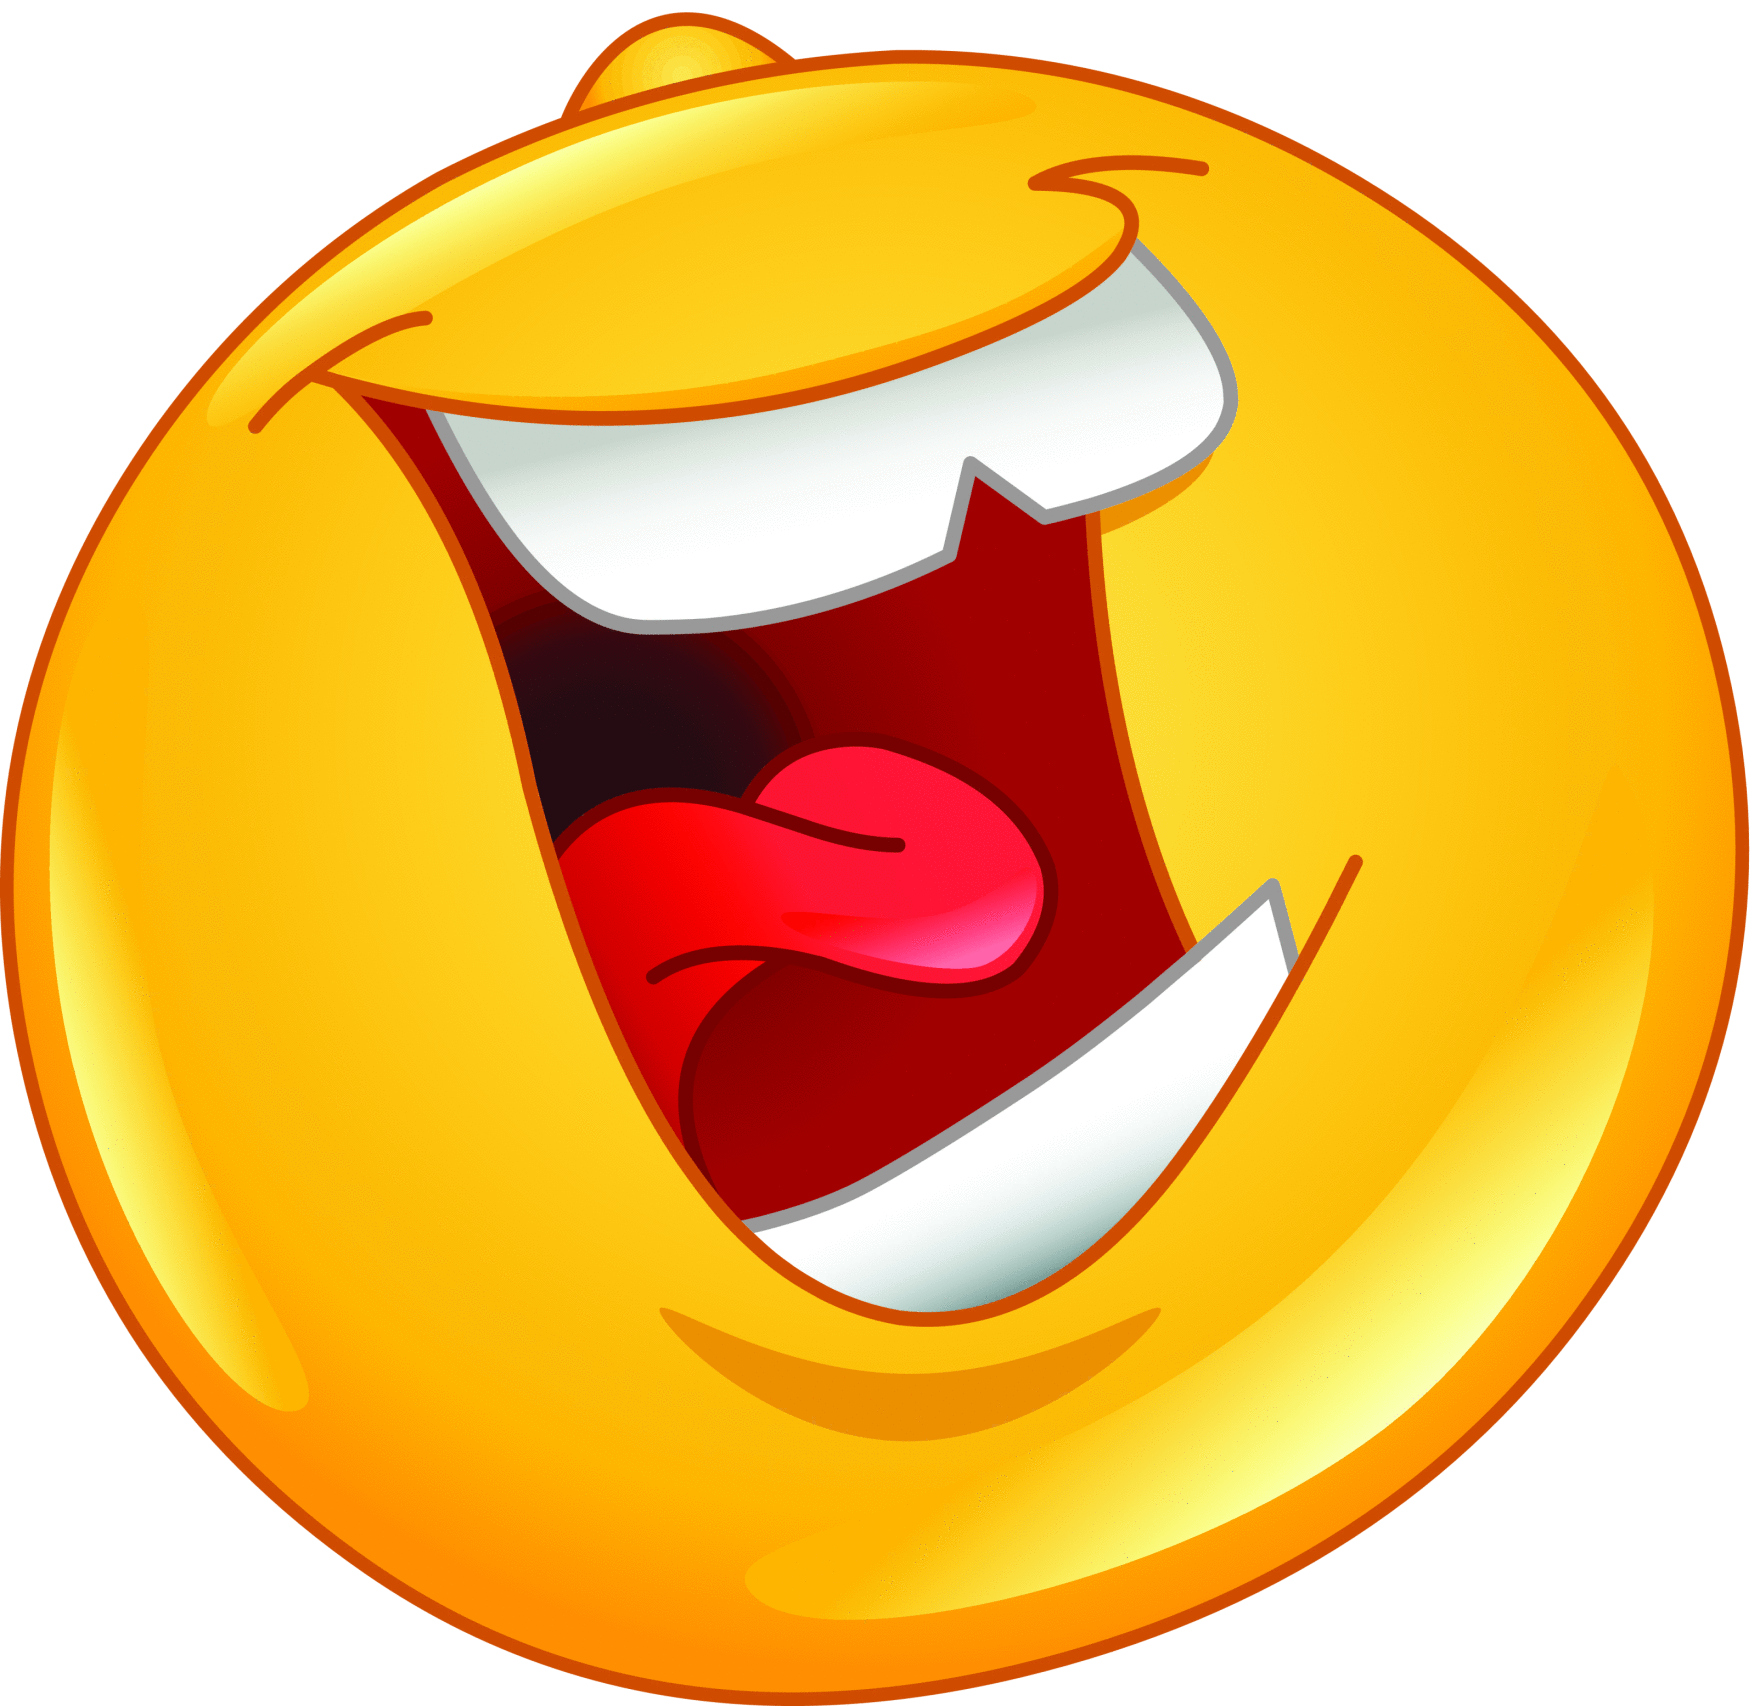 Laugh clipart.